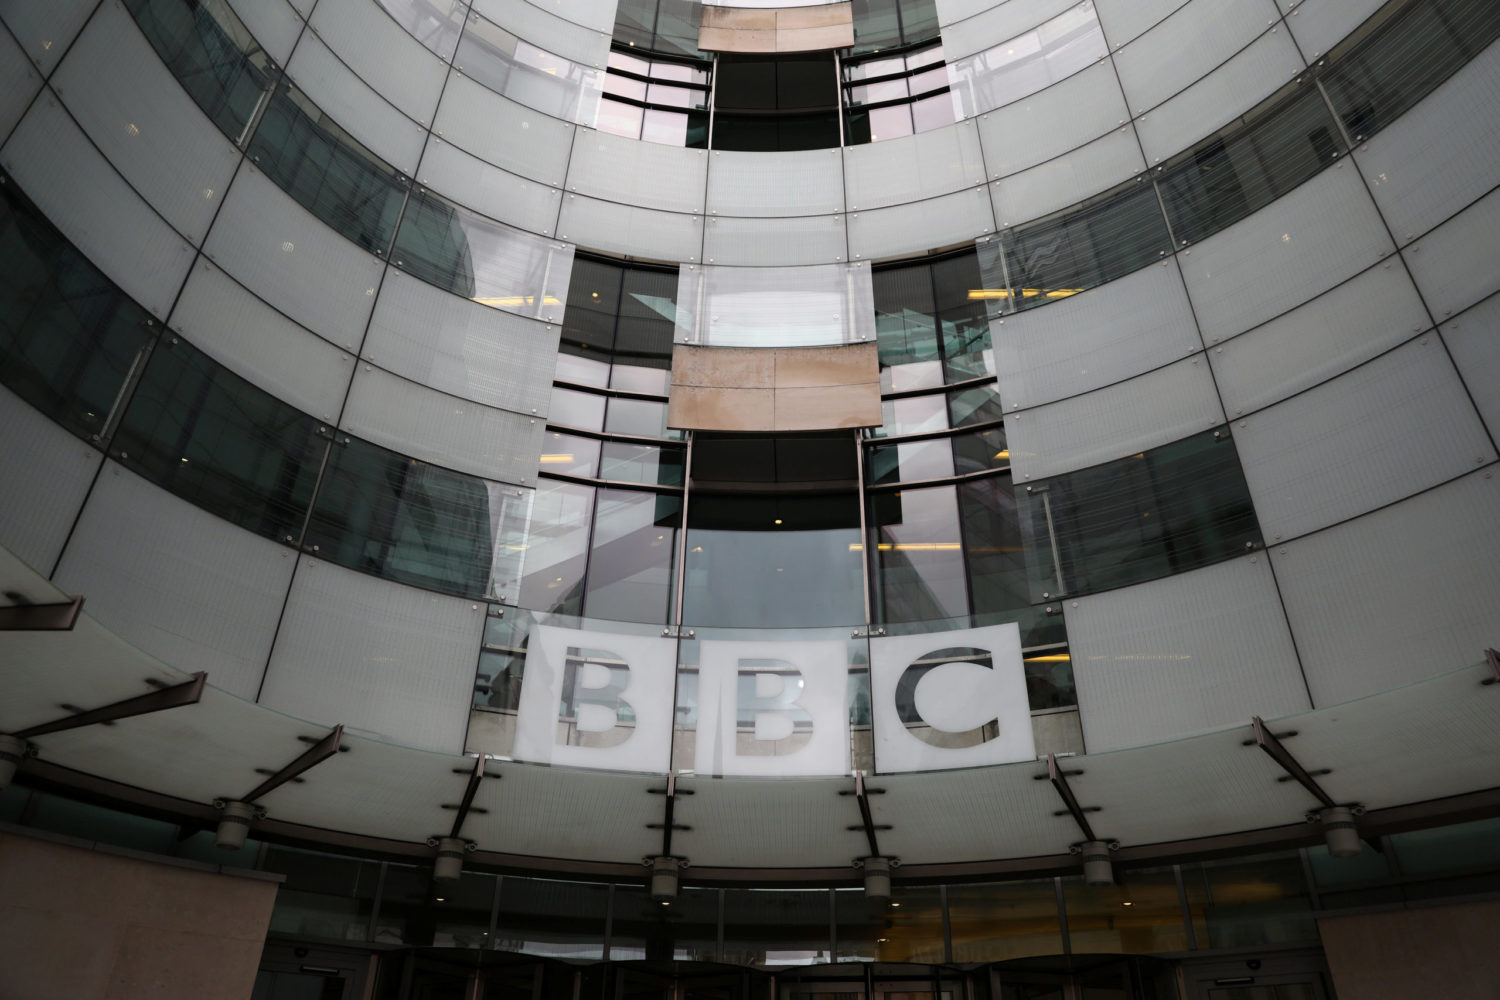 BBC announces cuts for TV, radio and online output for the regions